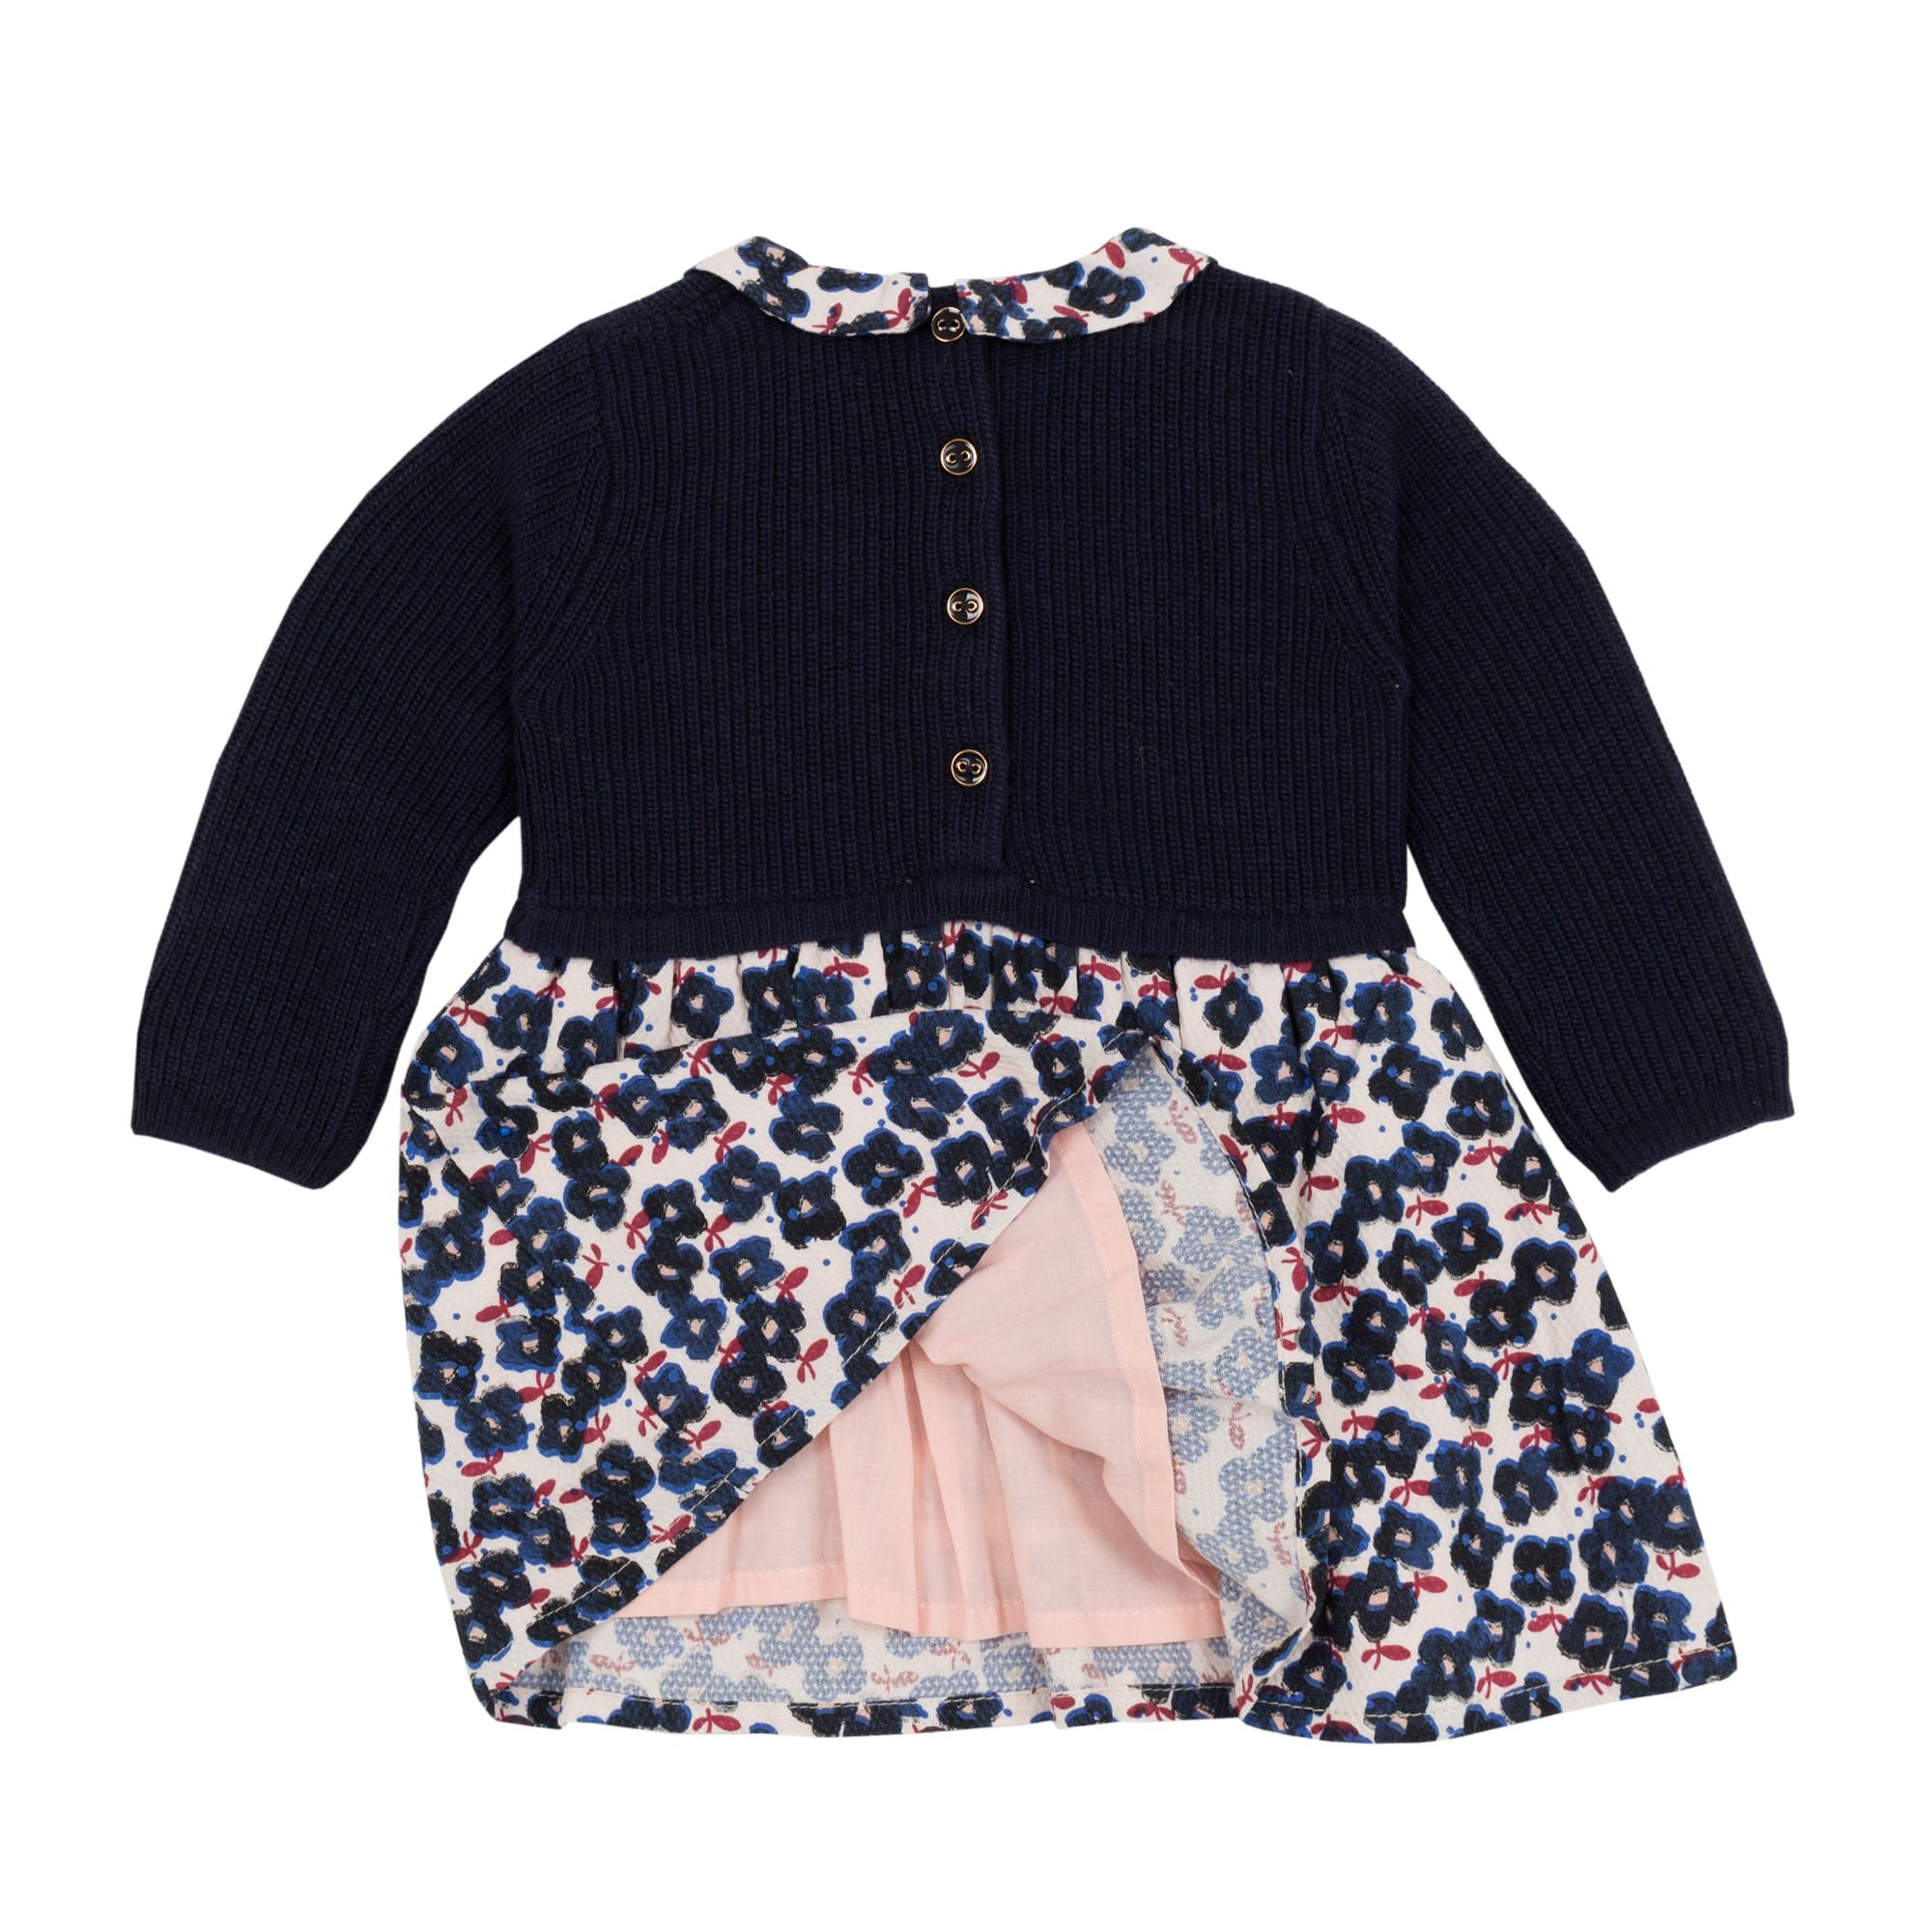 Baby & Toddler Girls Floral Print Knit Dress